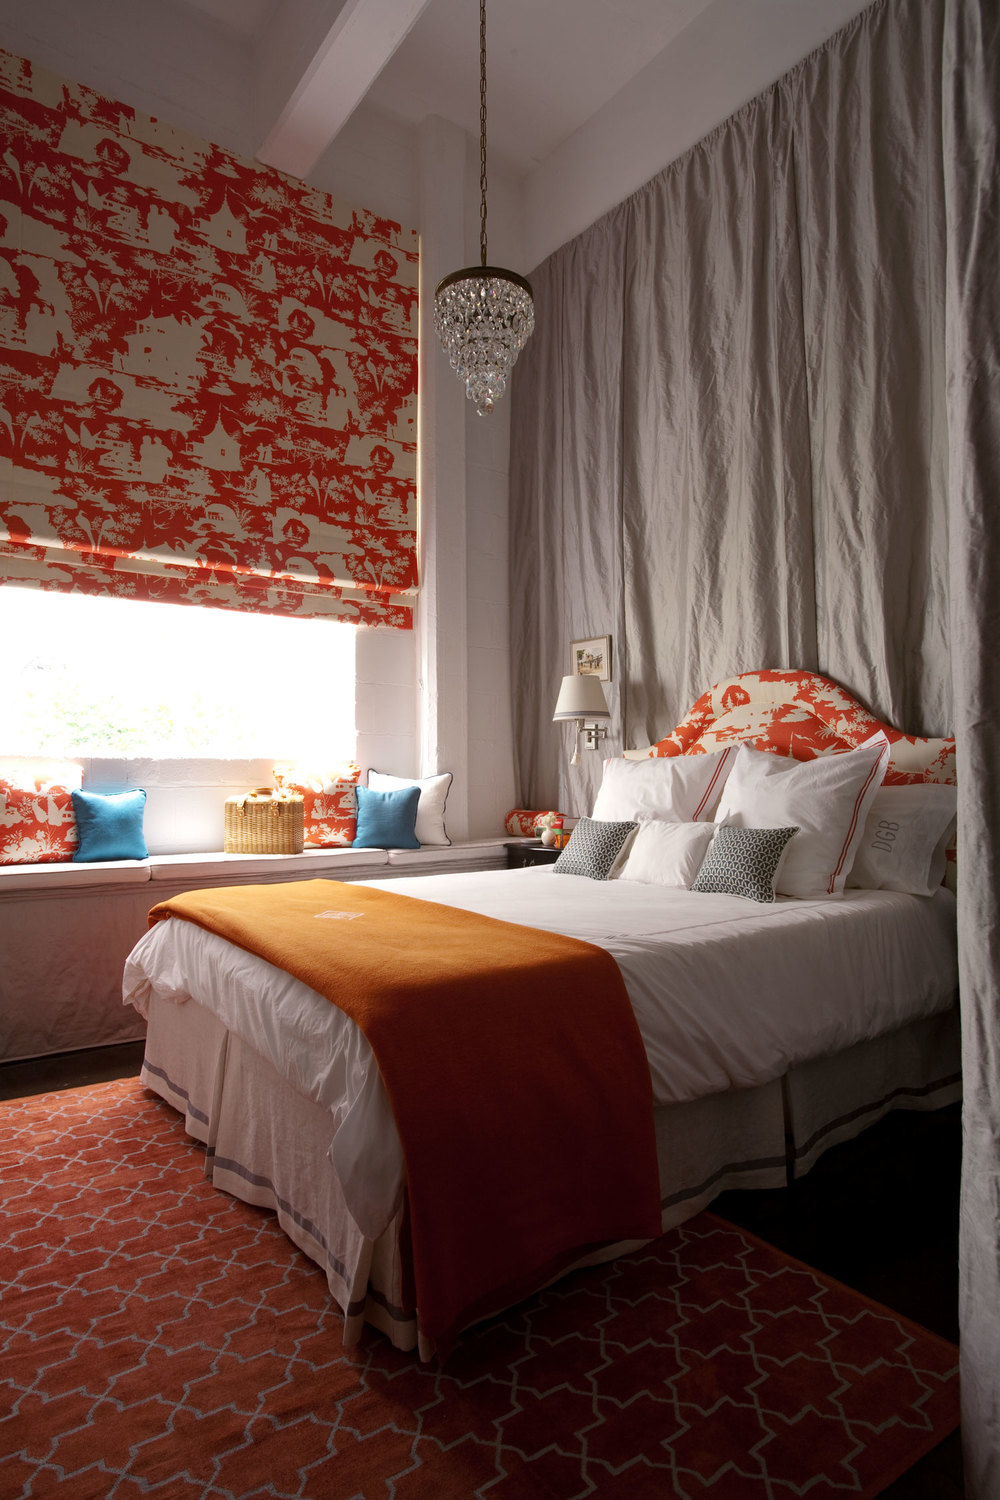 girls-bedroom-tangerine-toile-roman-blind-silk-curtain-diane-bergeron.jpg